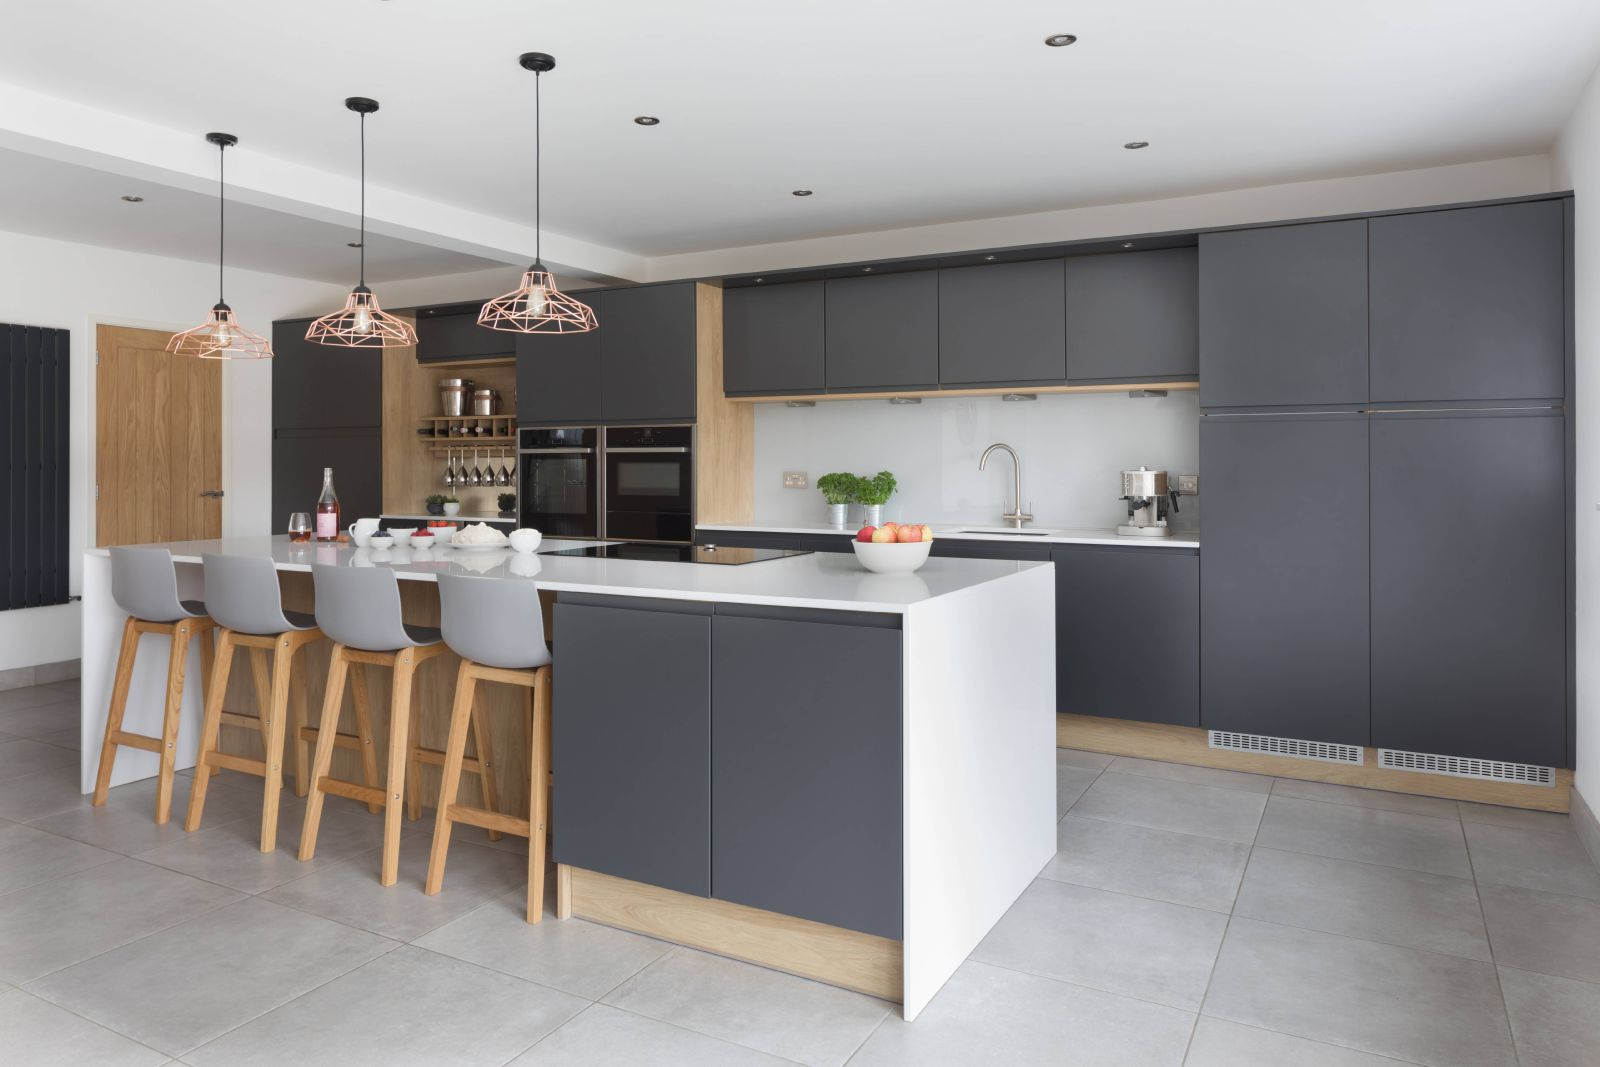 5 Things About True Handleless Kitchens Other Designers Haven T Shown You Find Your Kitchen Inspiration Blog Sigma 3 Kitchens